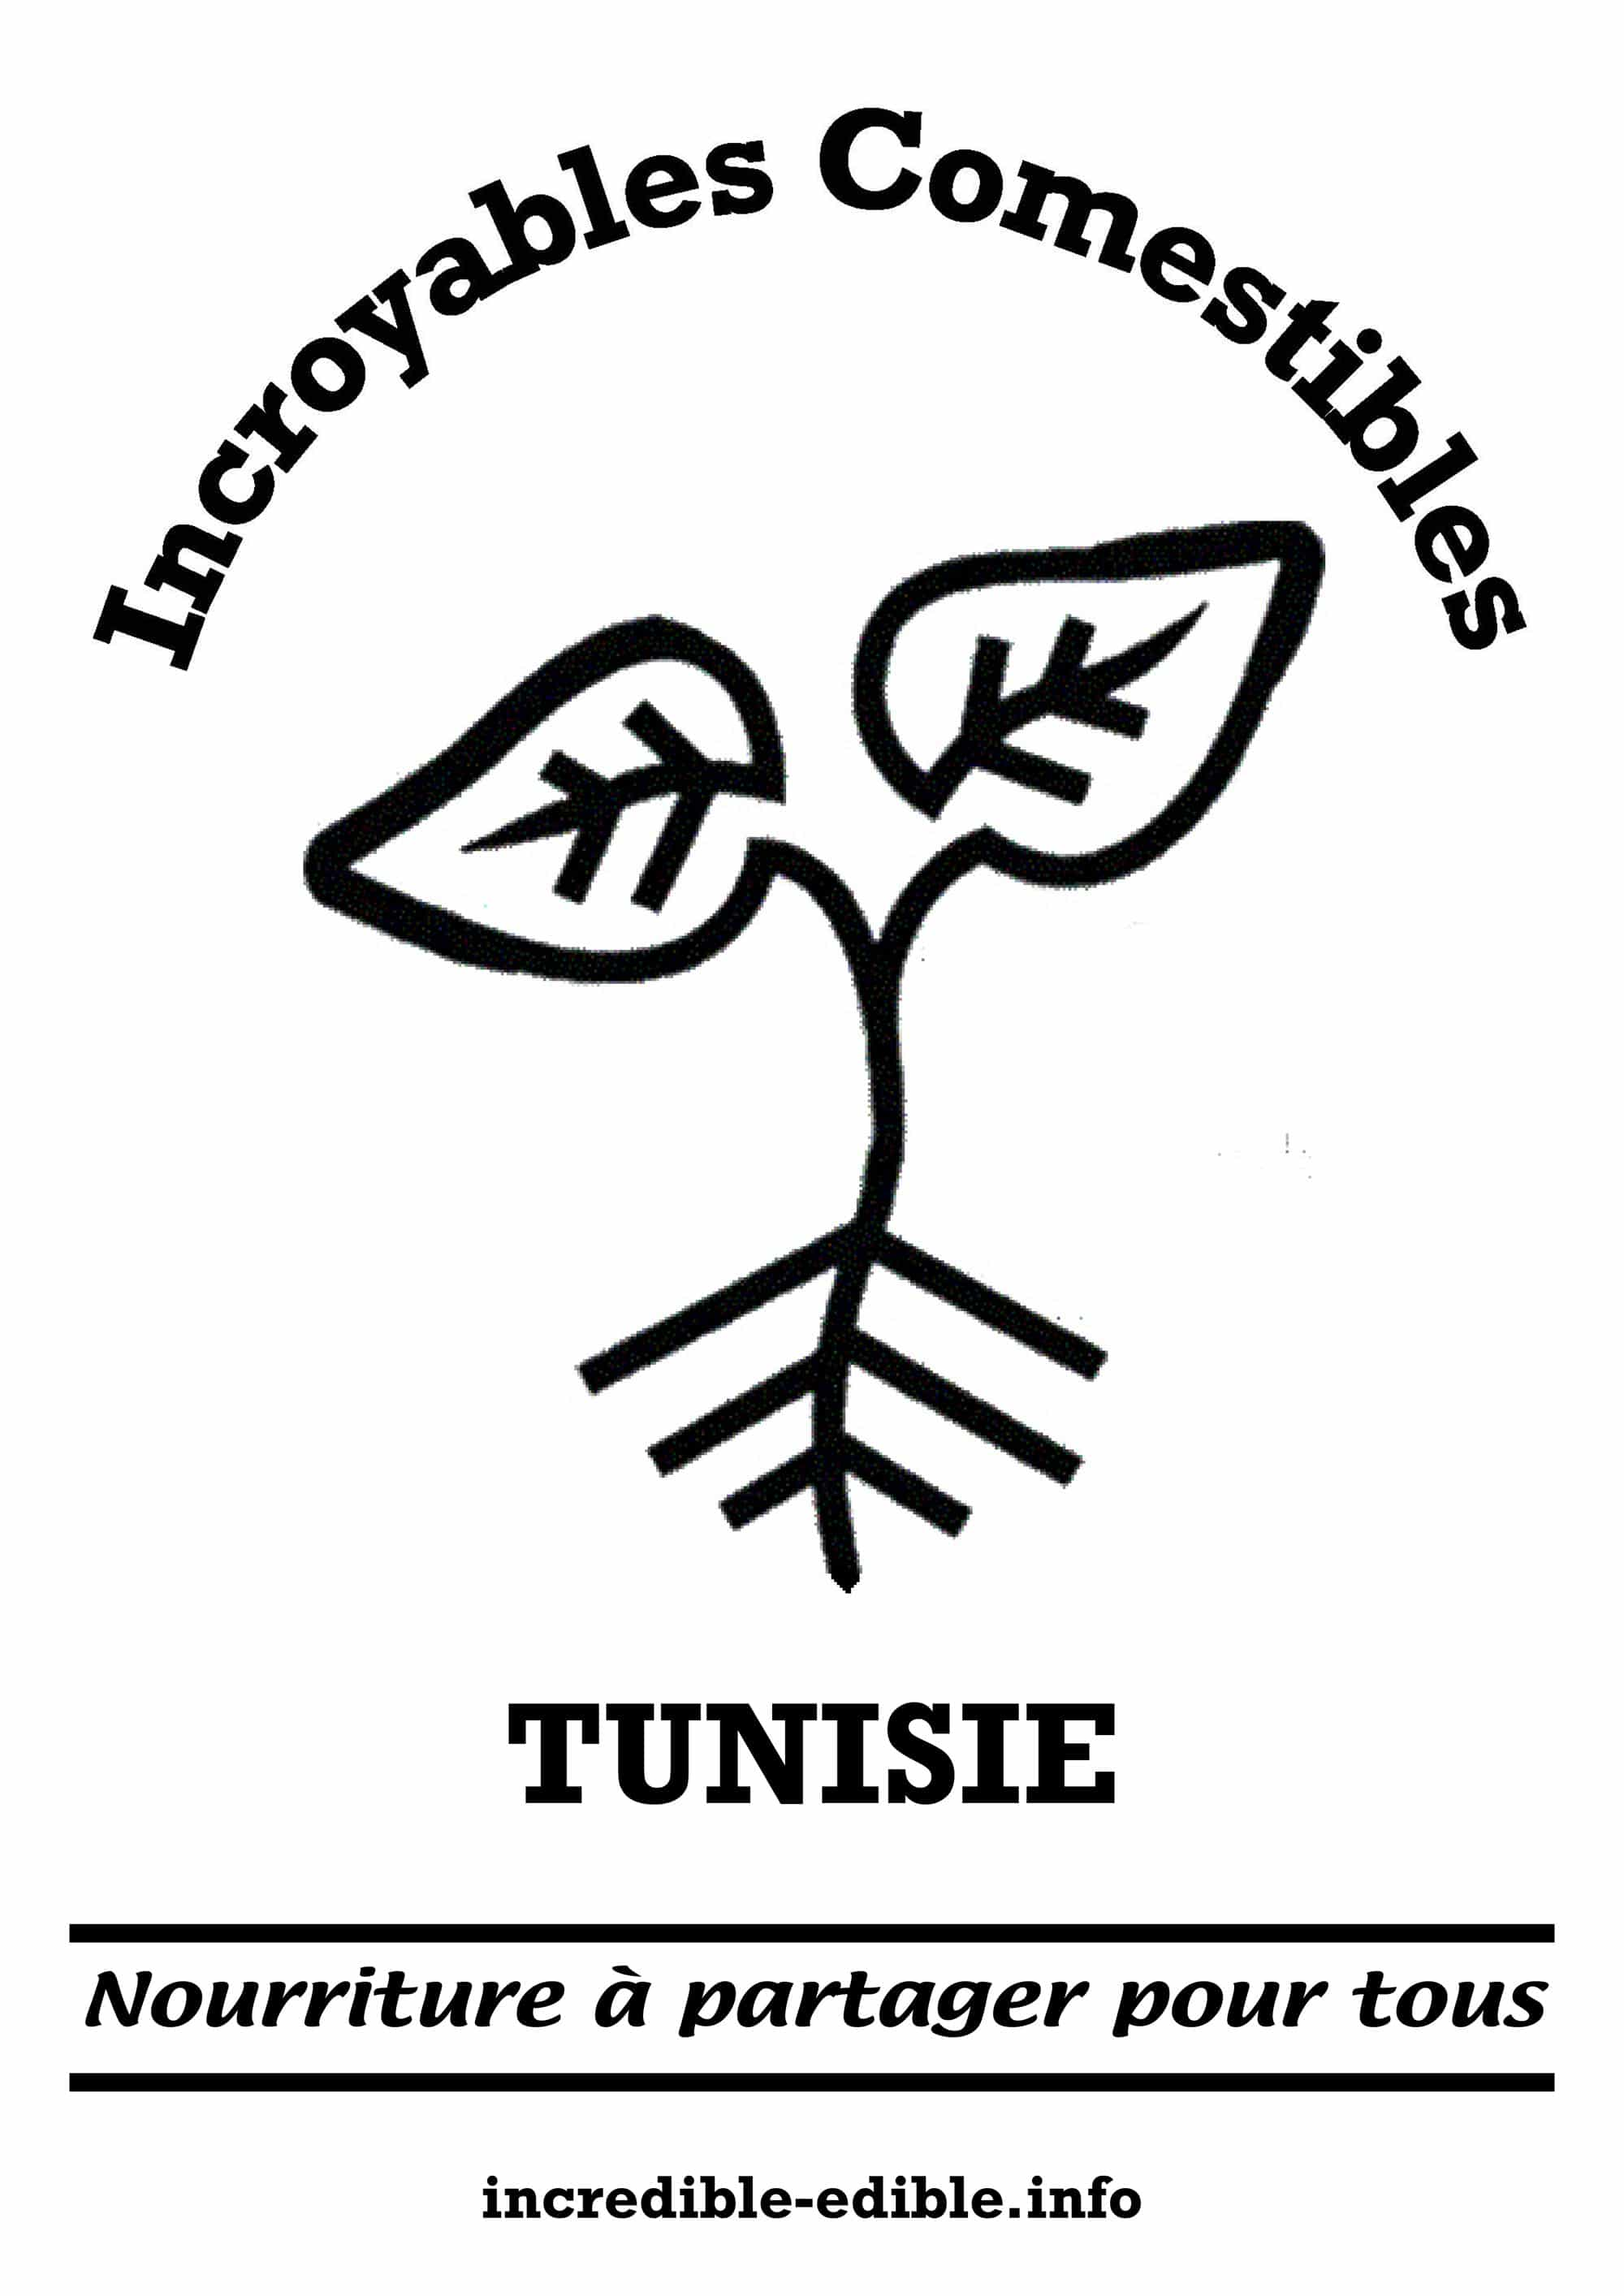 visuel_IC_tunisie_A3_w2000